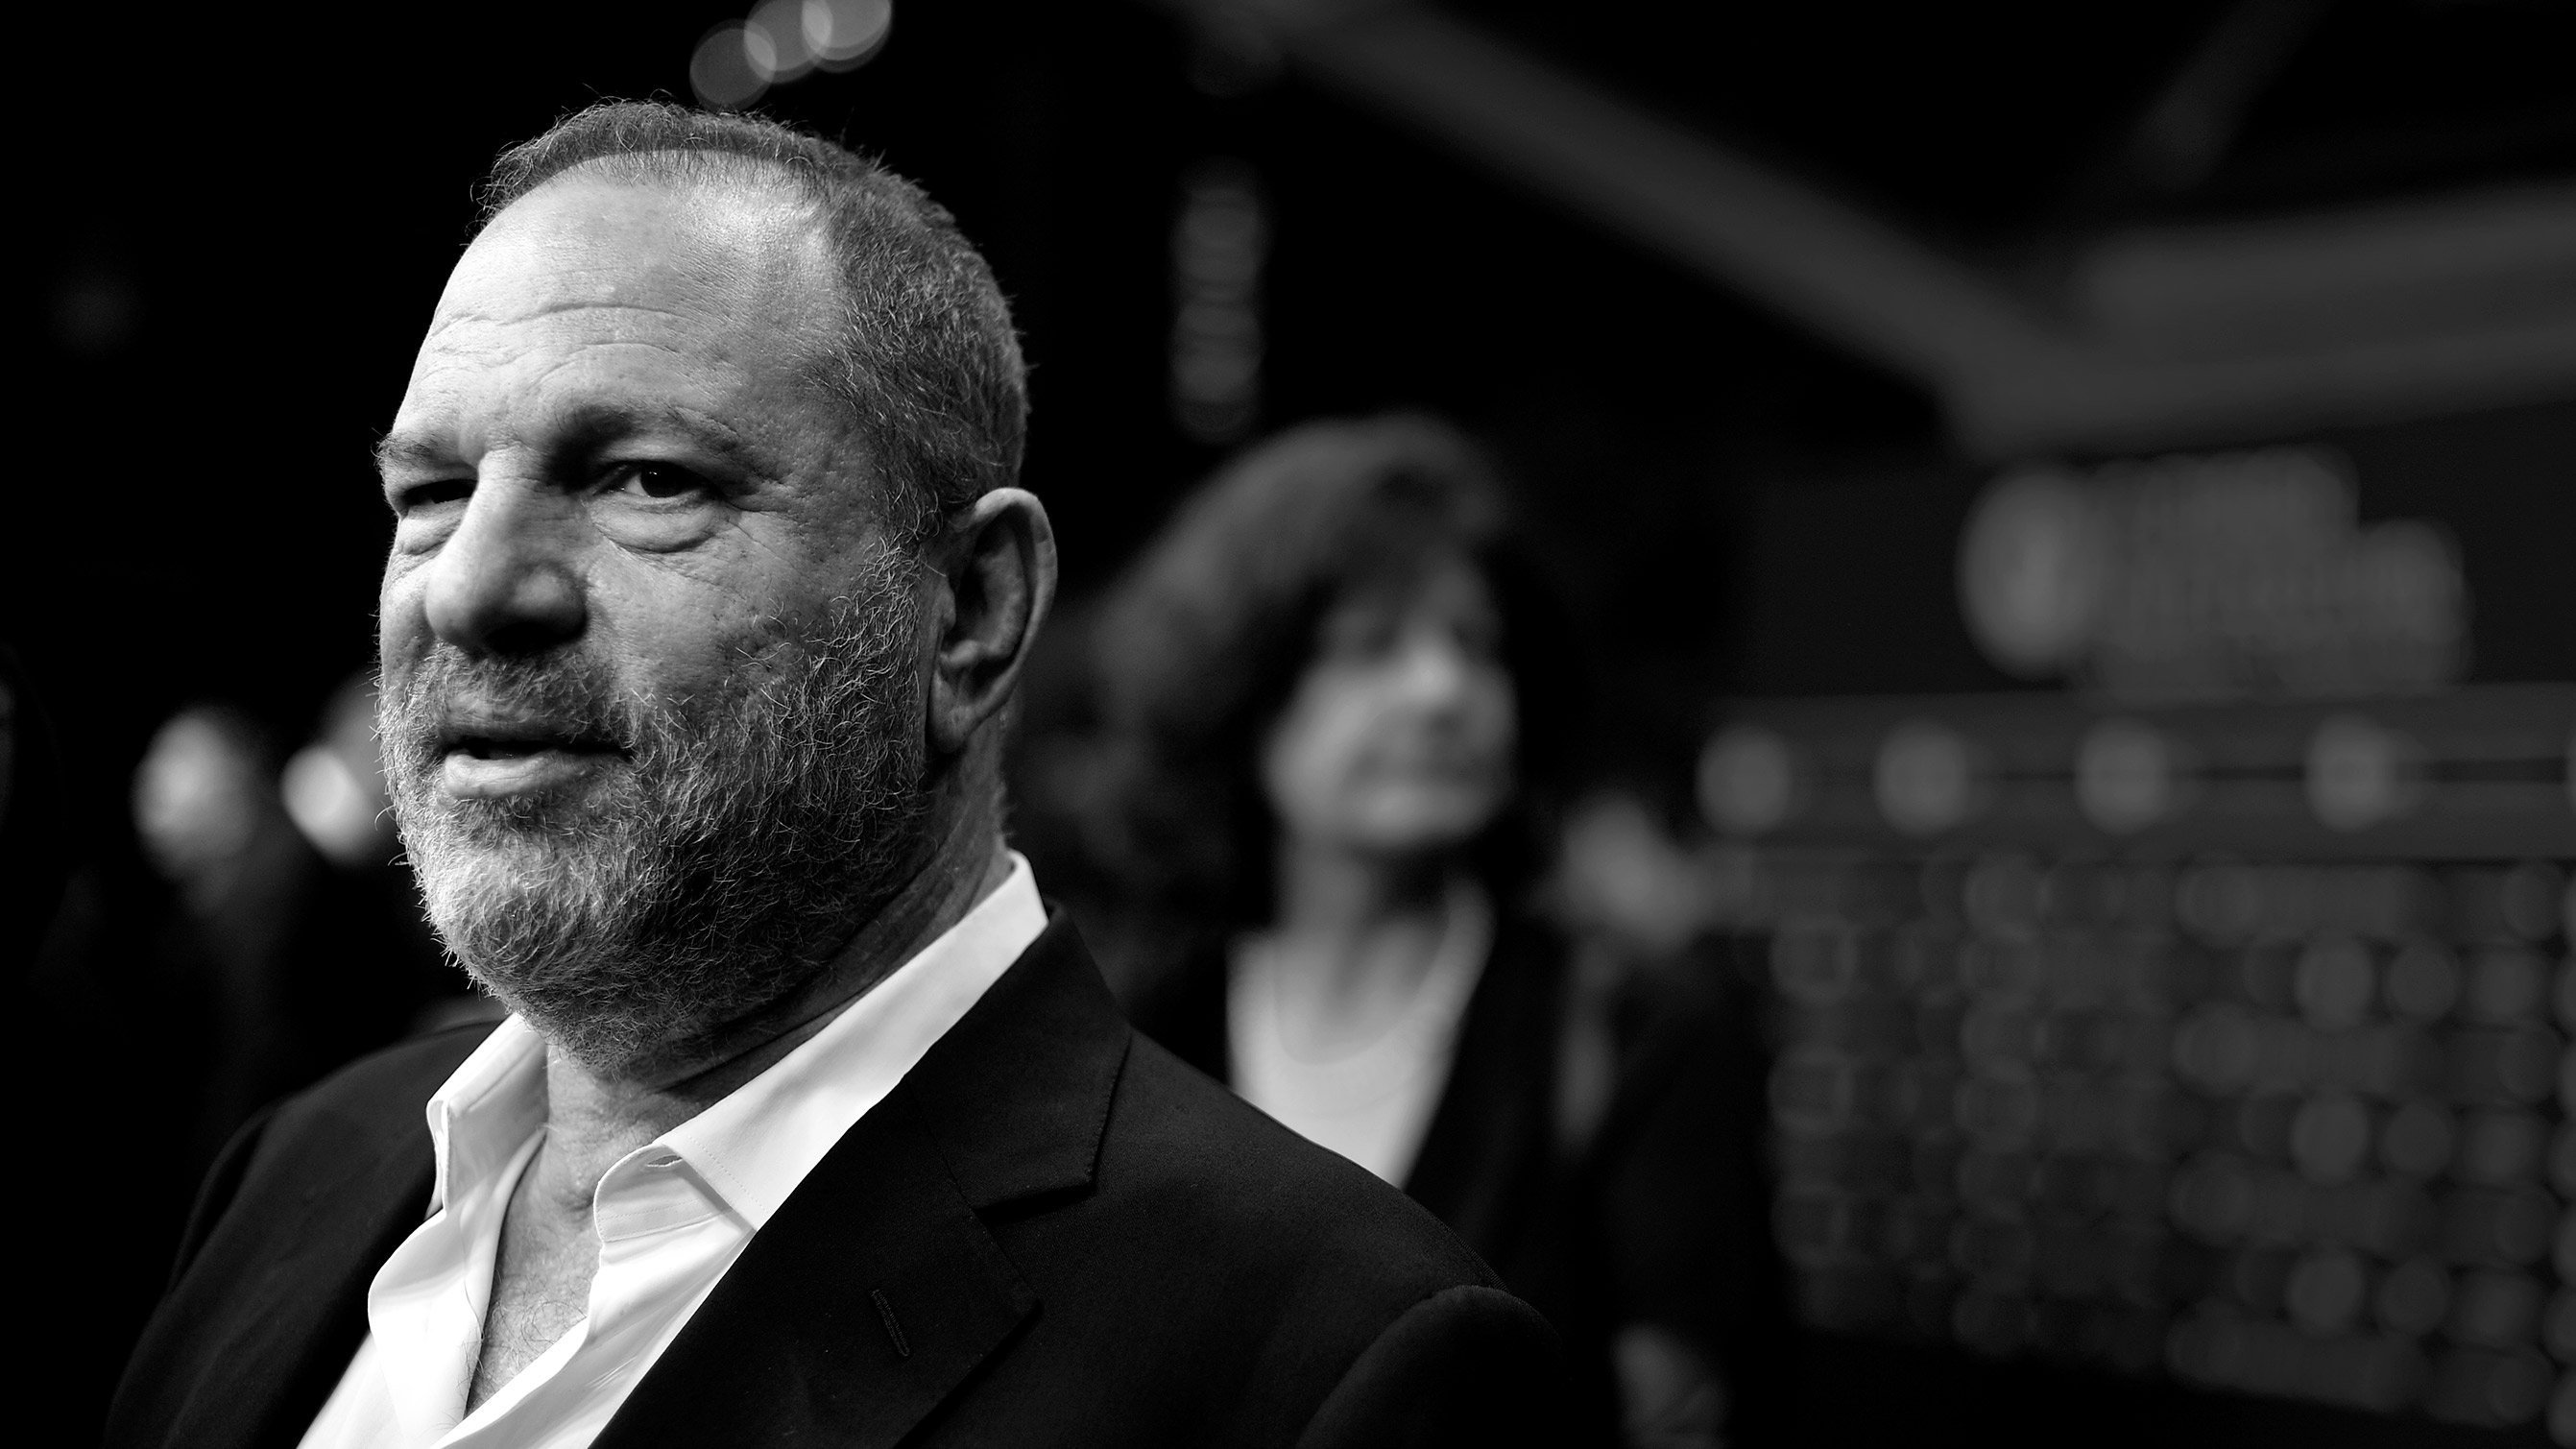 Harvey Weinstein is expected to turn himself in to the NYPD relating to sexual misconduct charges that could come as early as tomorrow according to a source familiar with the investigation.